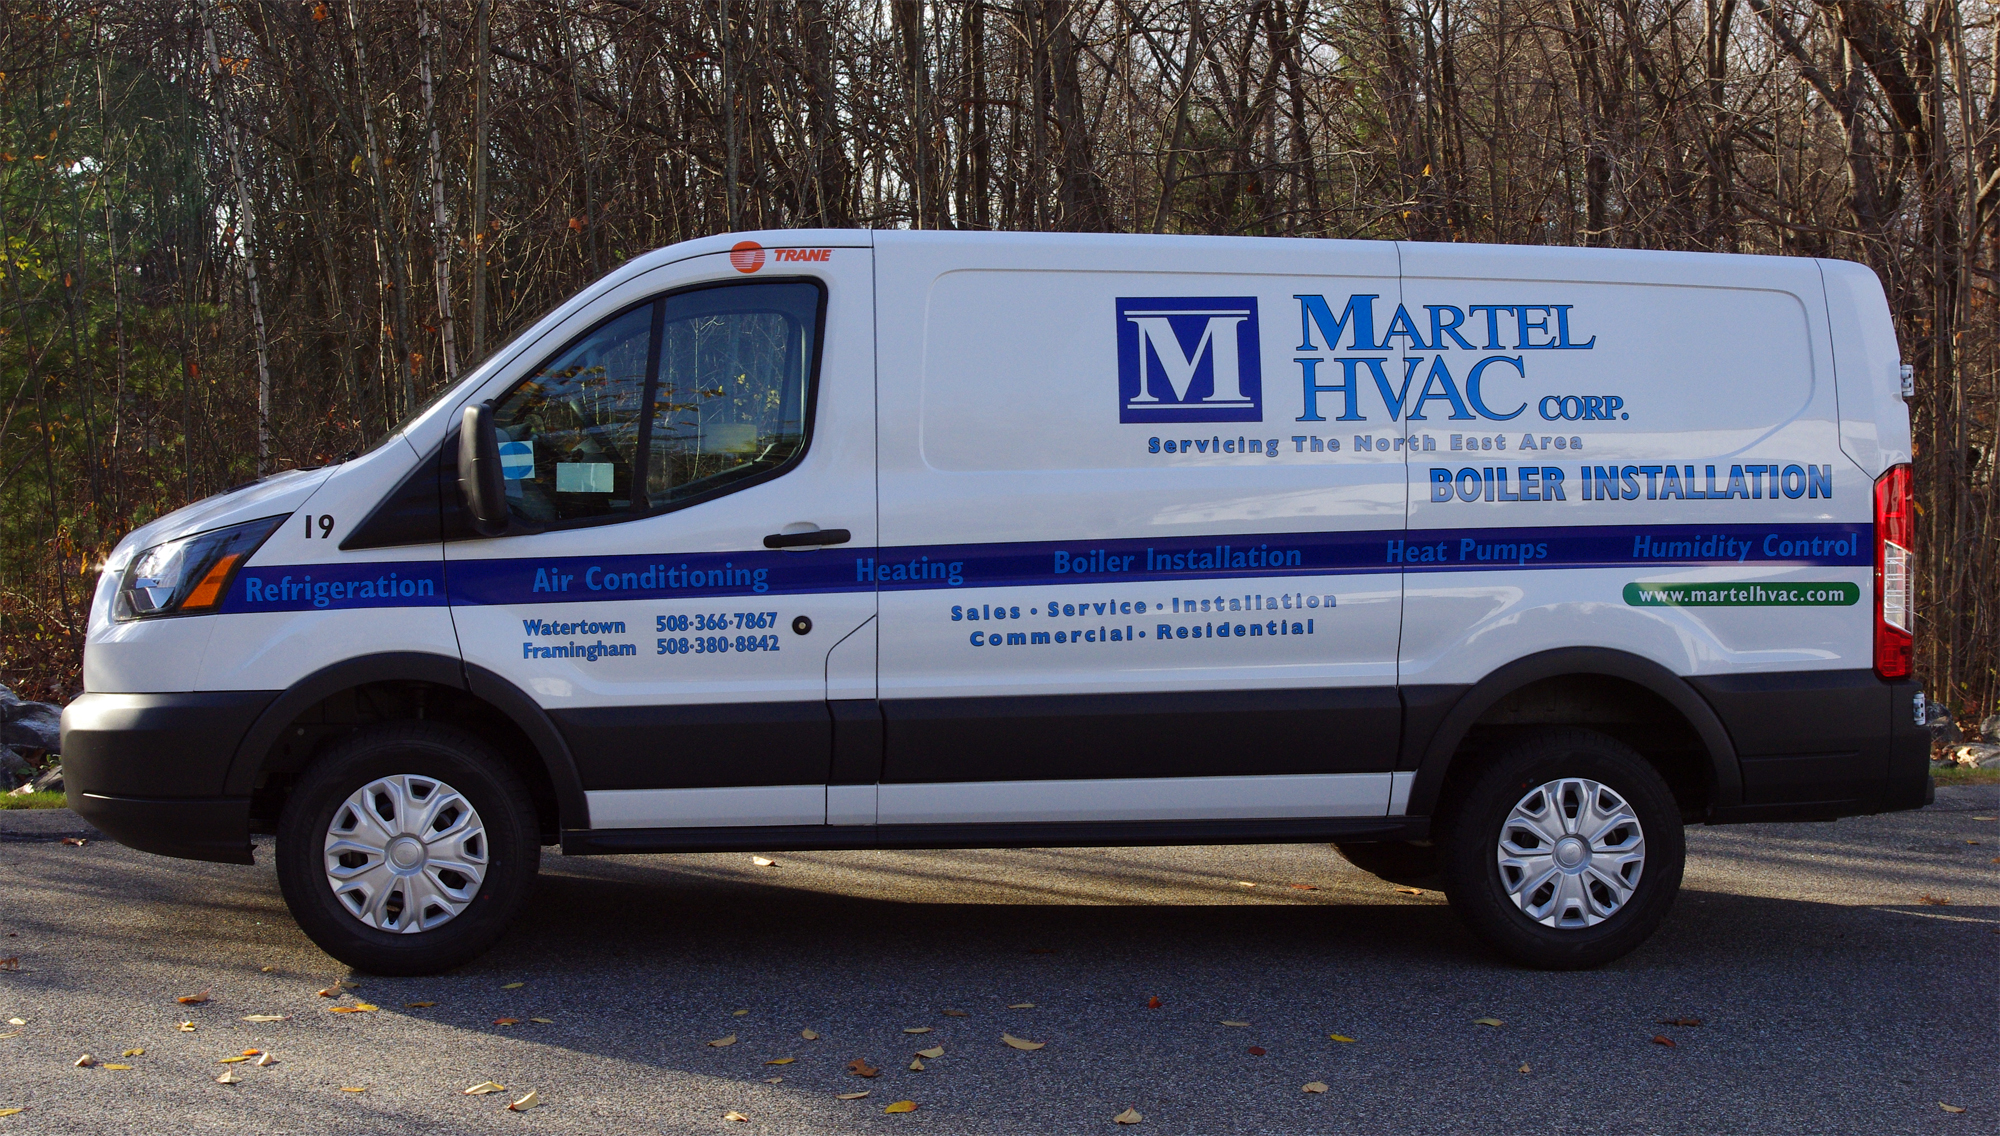 MARTELHVAC_5_WEBSITE .jpg